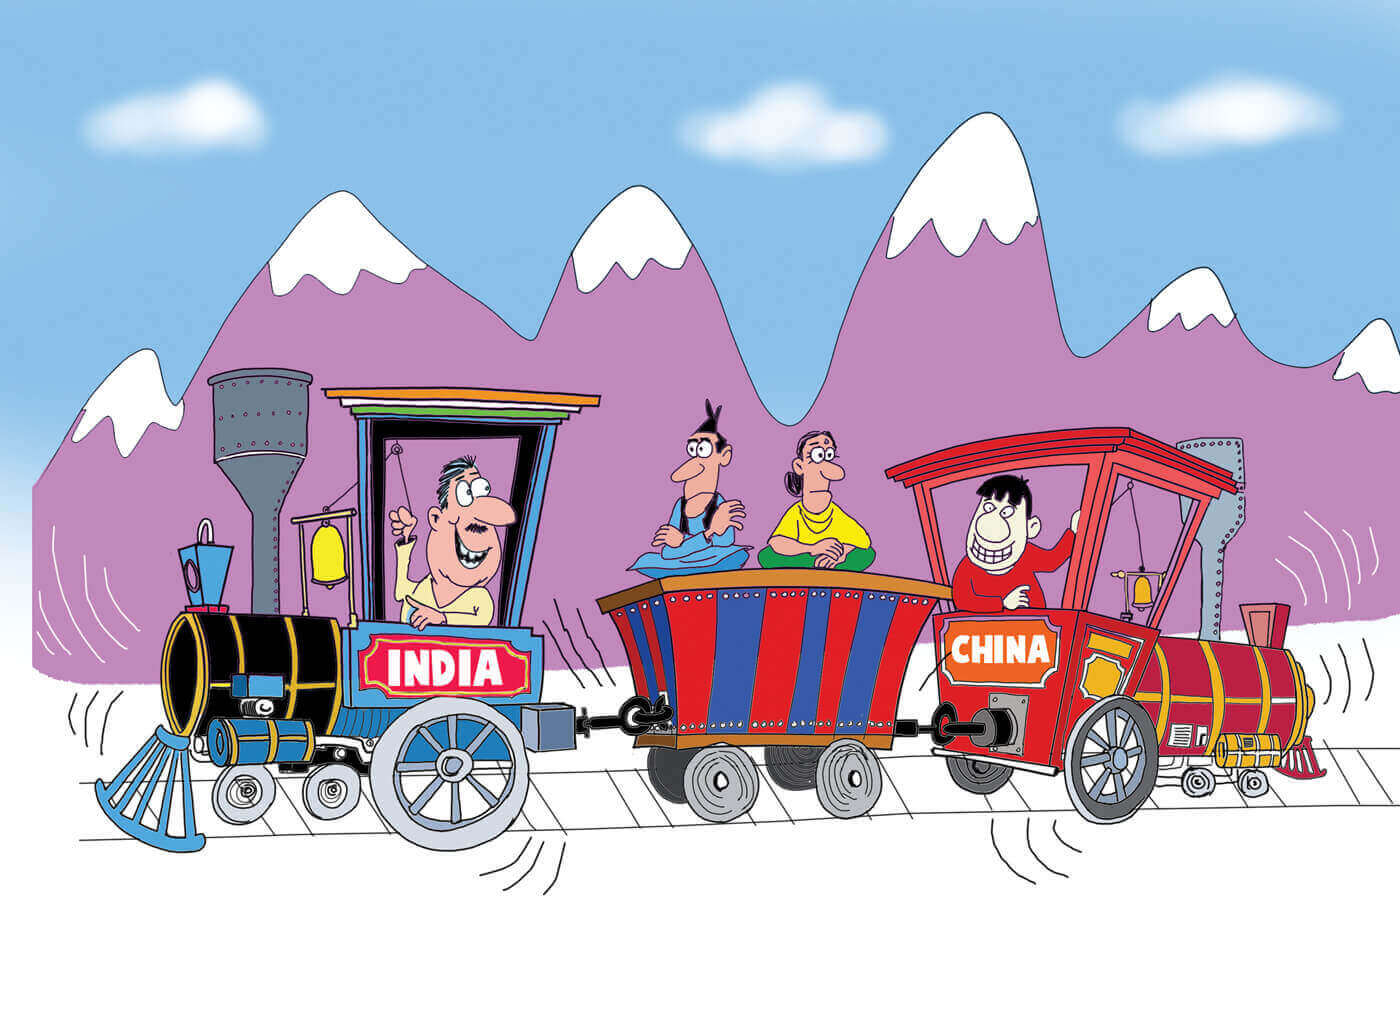 Political geography of India-Nepal-China ties